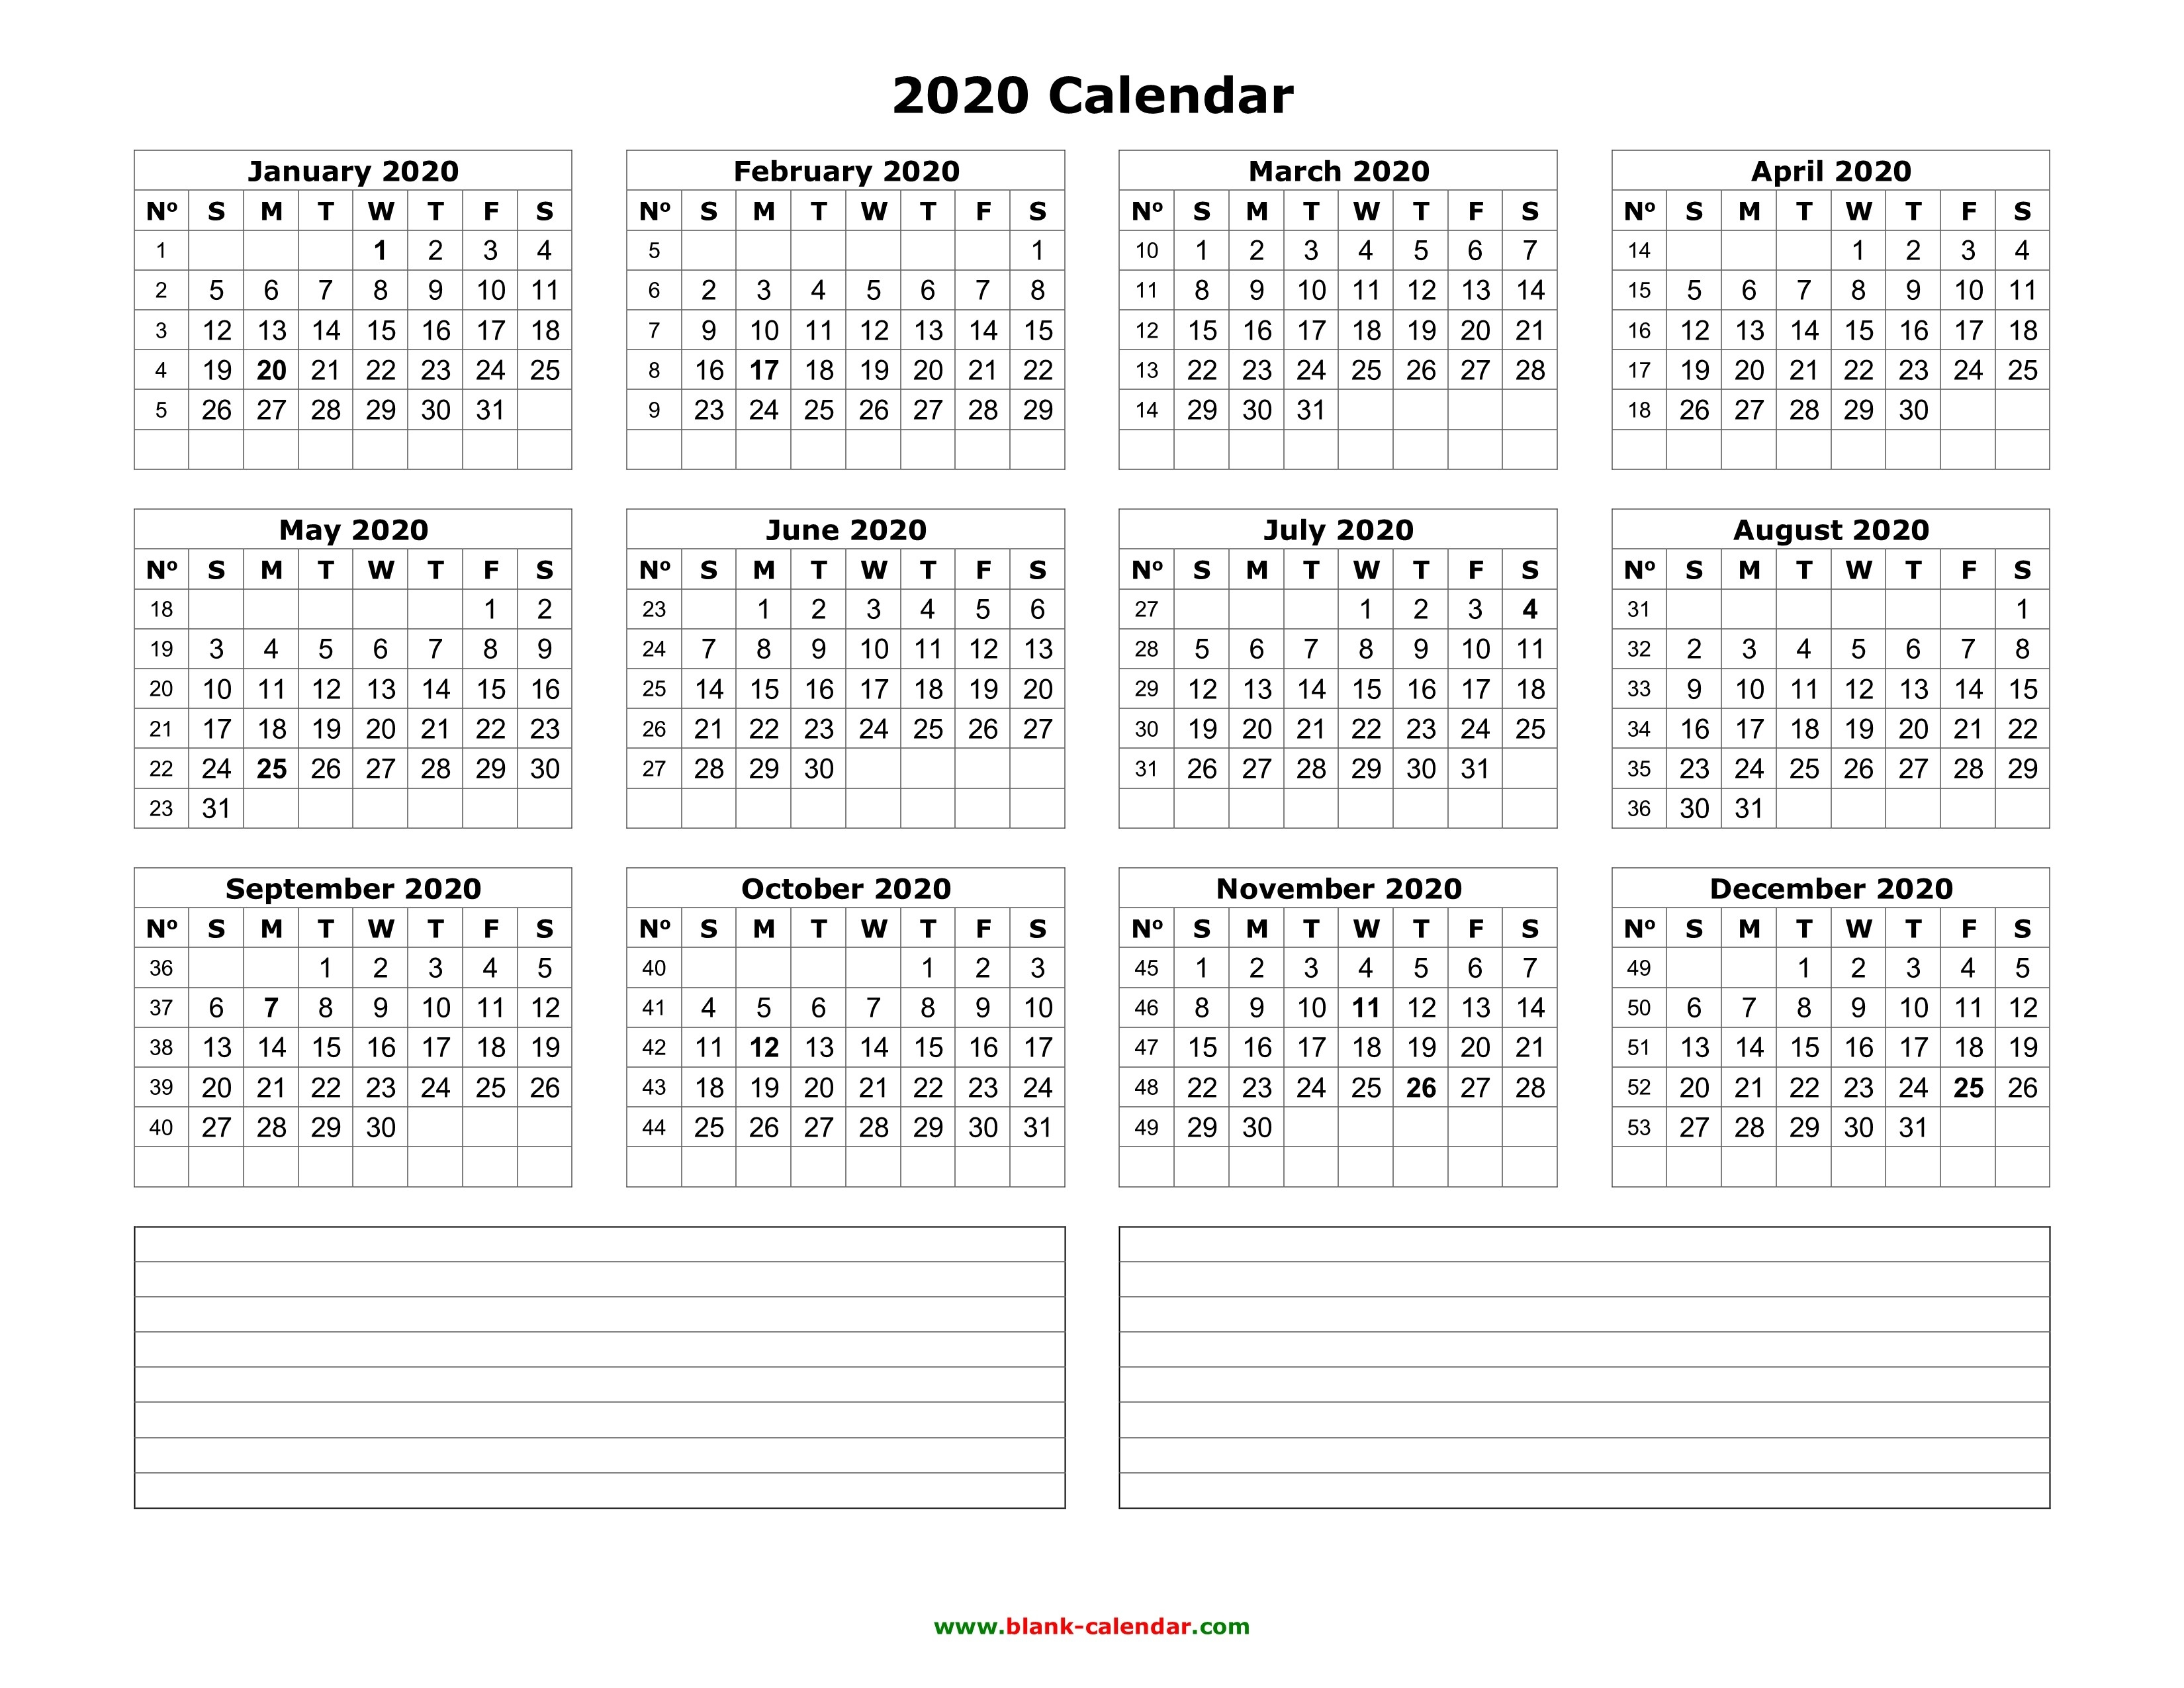 Yearly Calendar 2020 | Free Download And Print-Blank W 9 To Print 2020